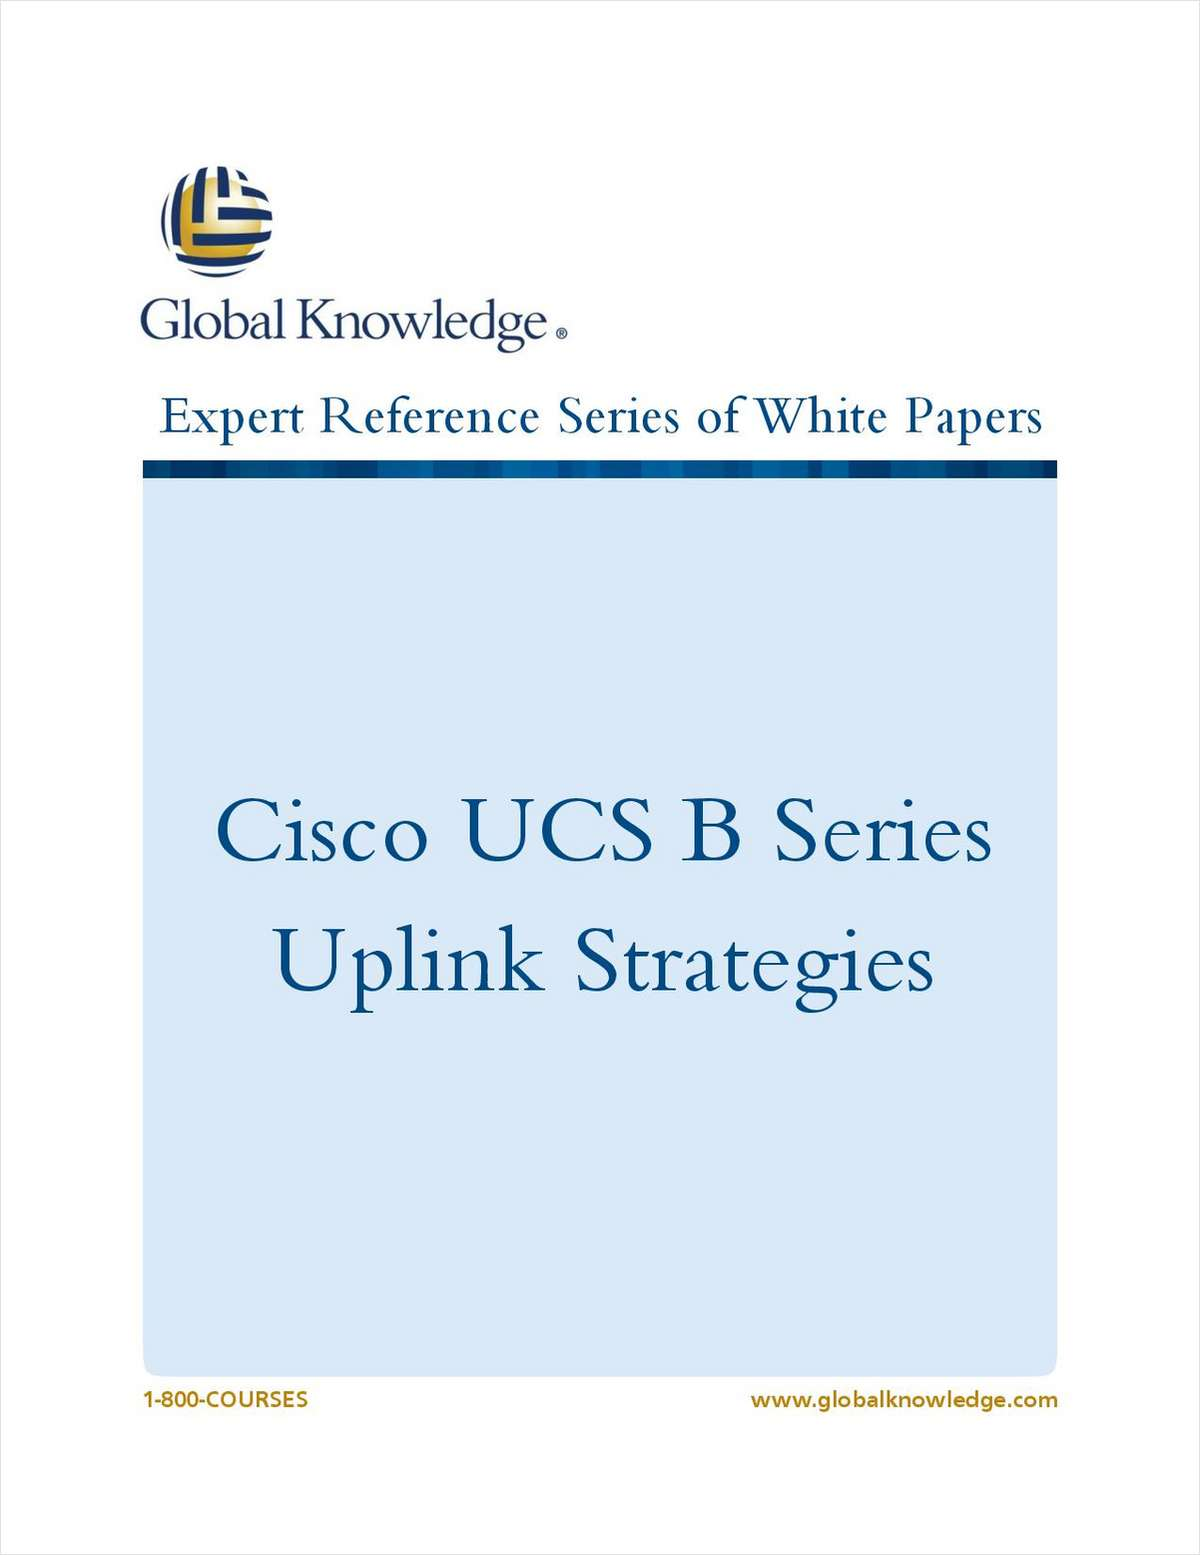 Cisco UCS B Series Uplink Strategies